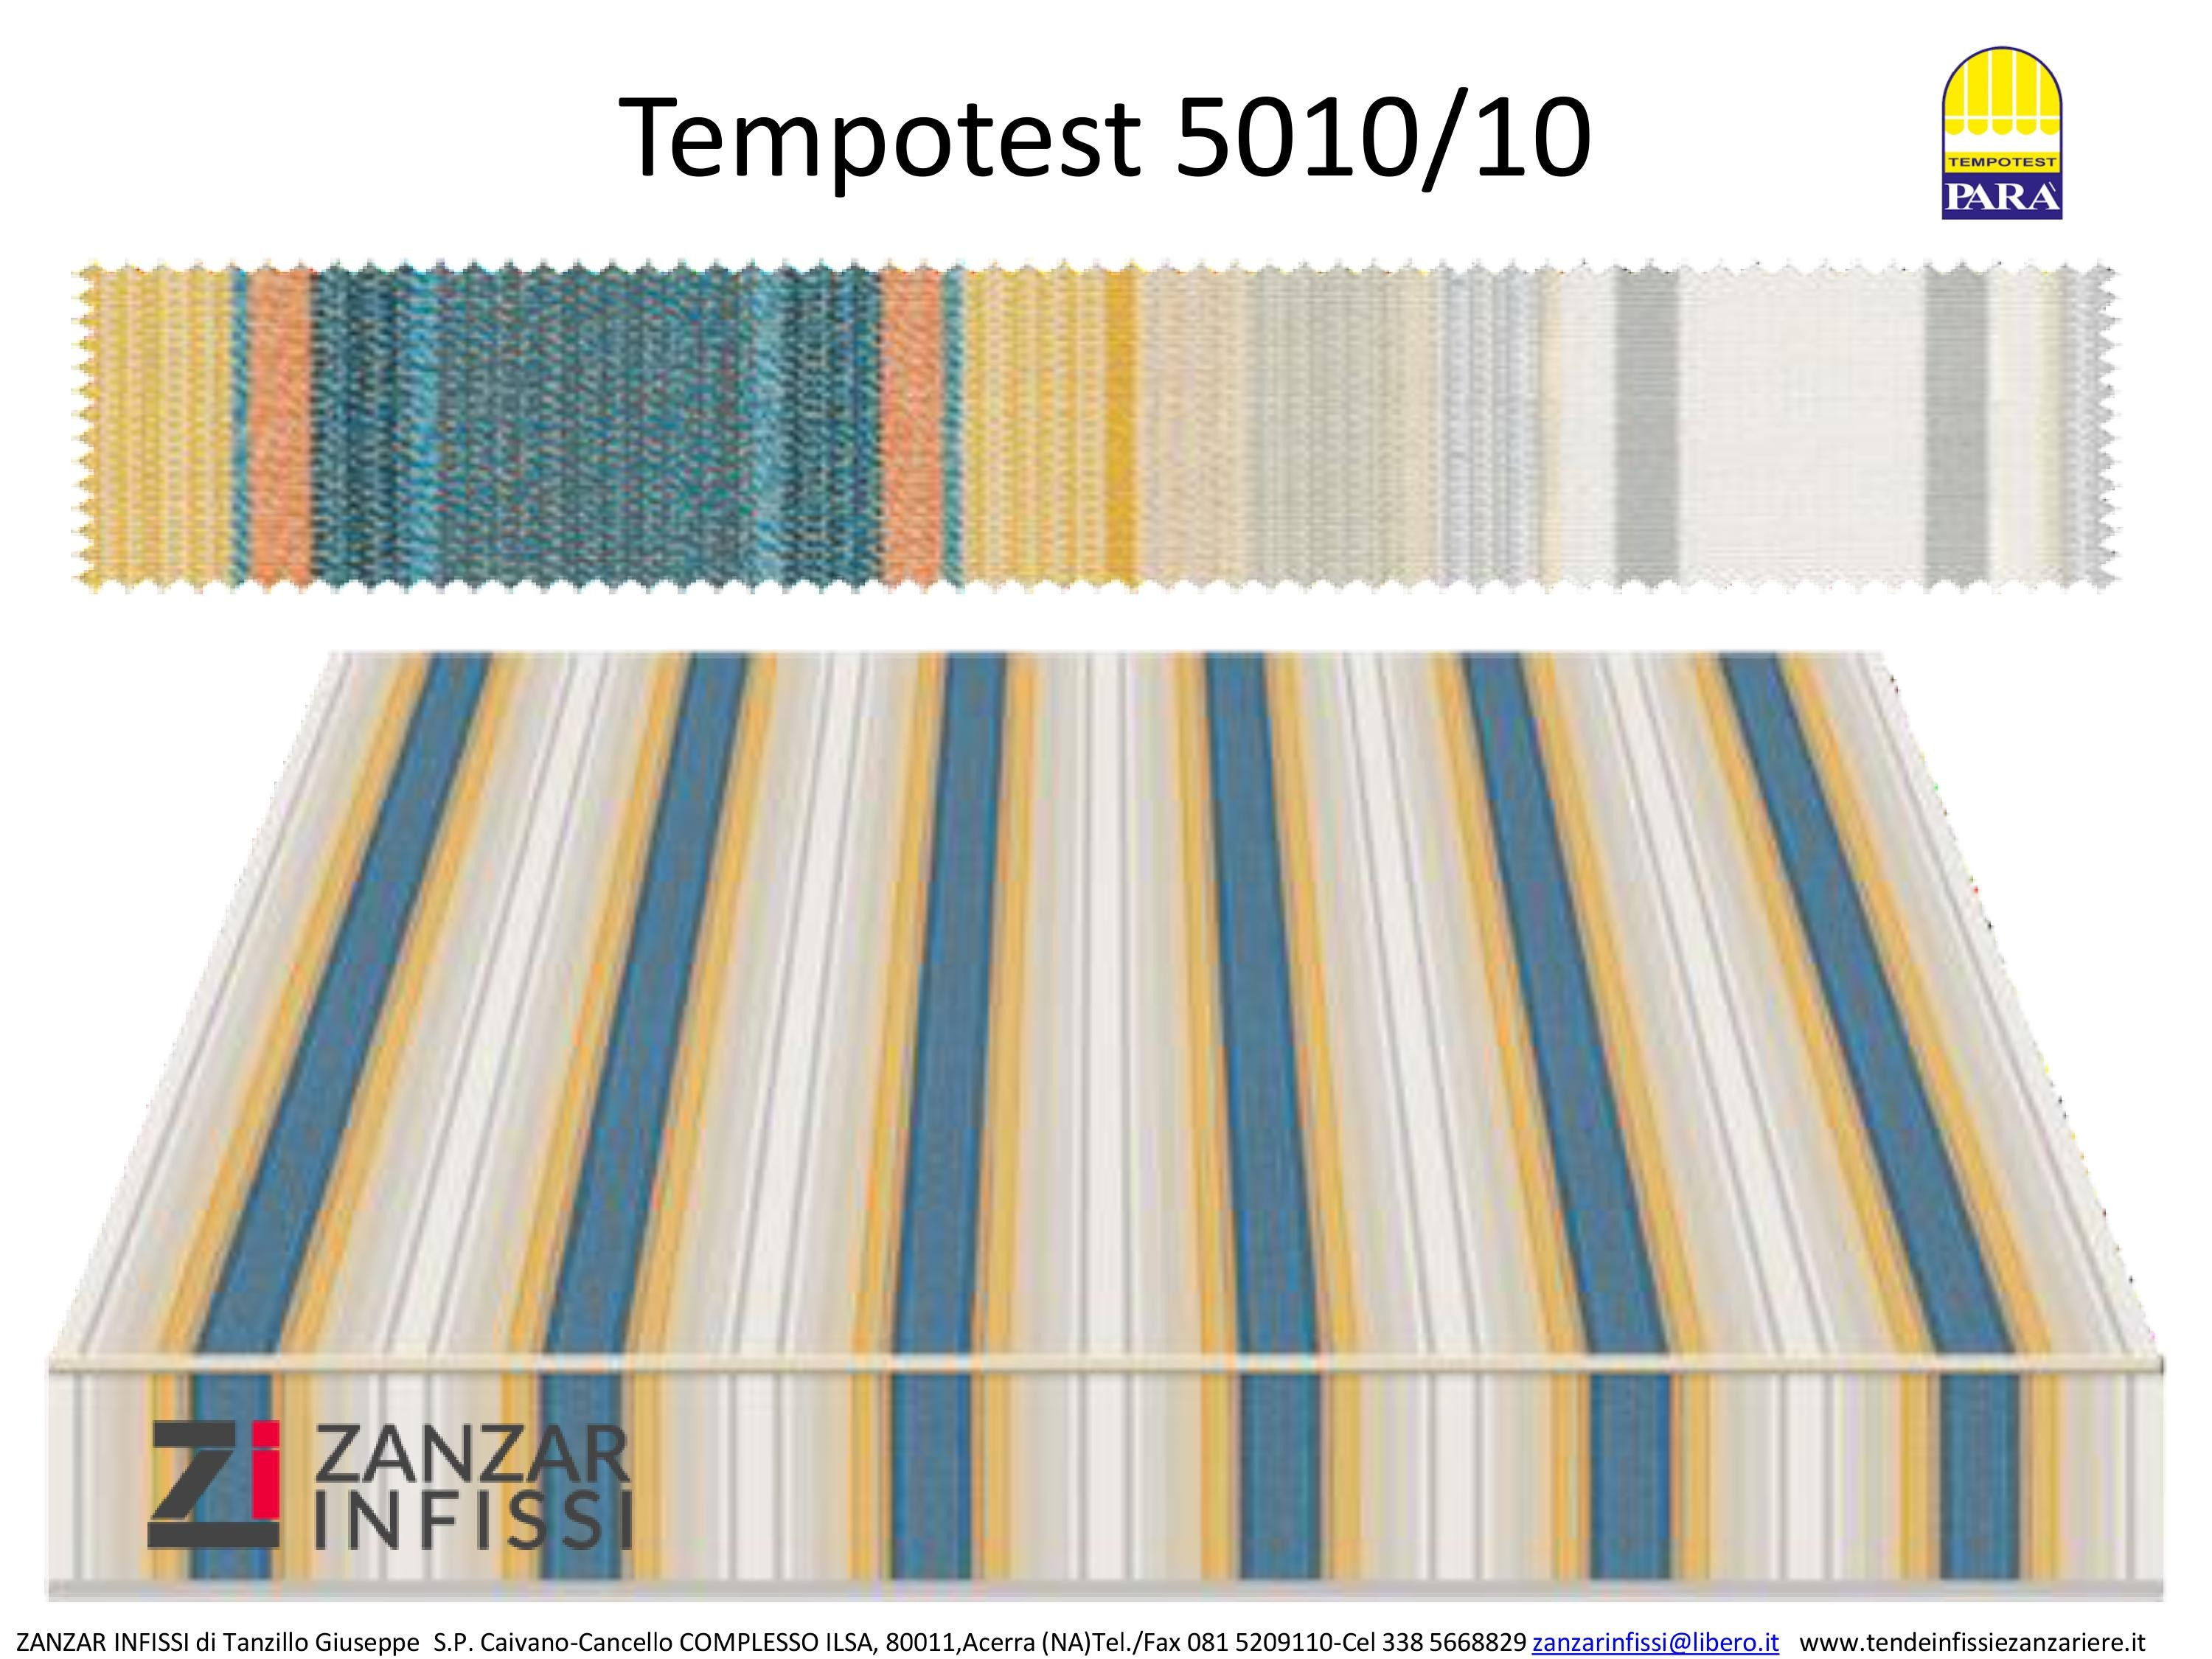 Tempotest 5010/10